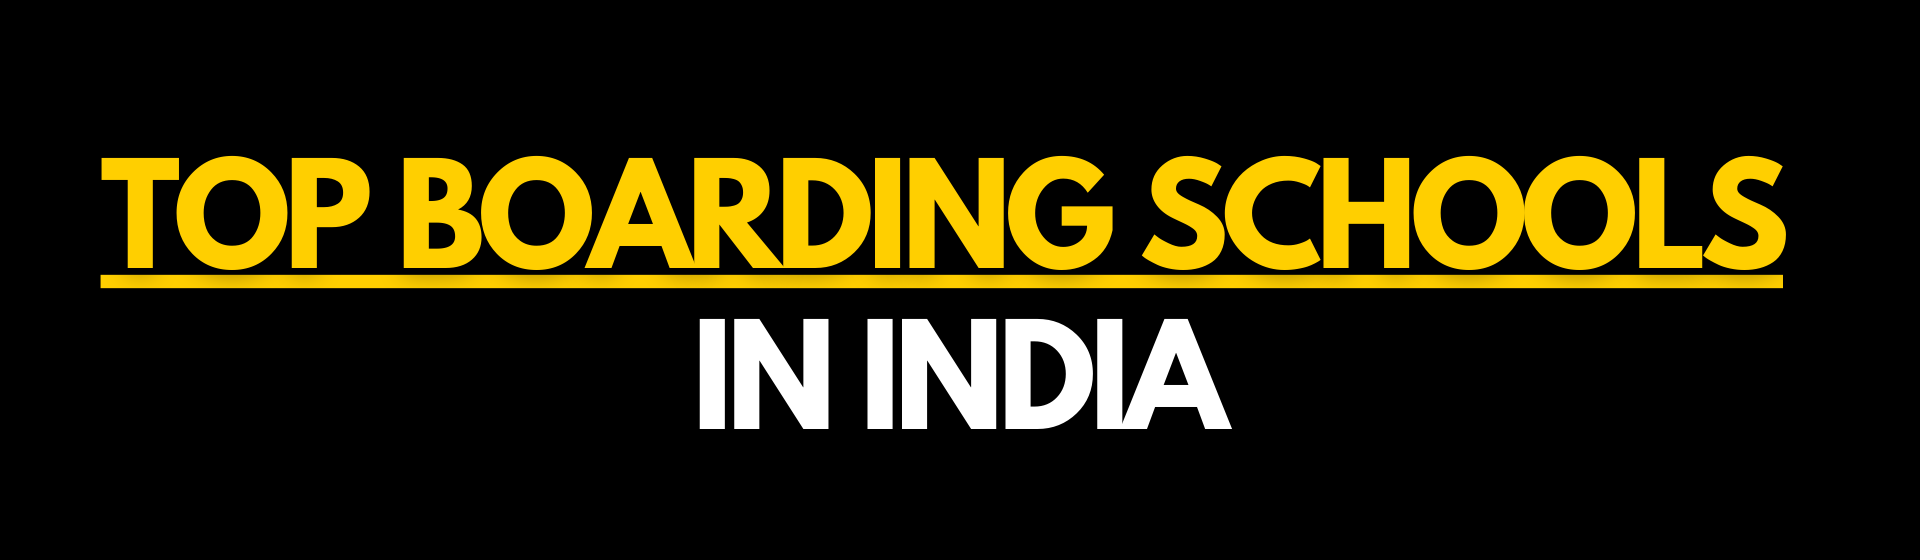 List of top boarding schools in India